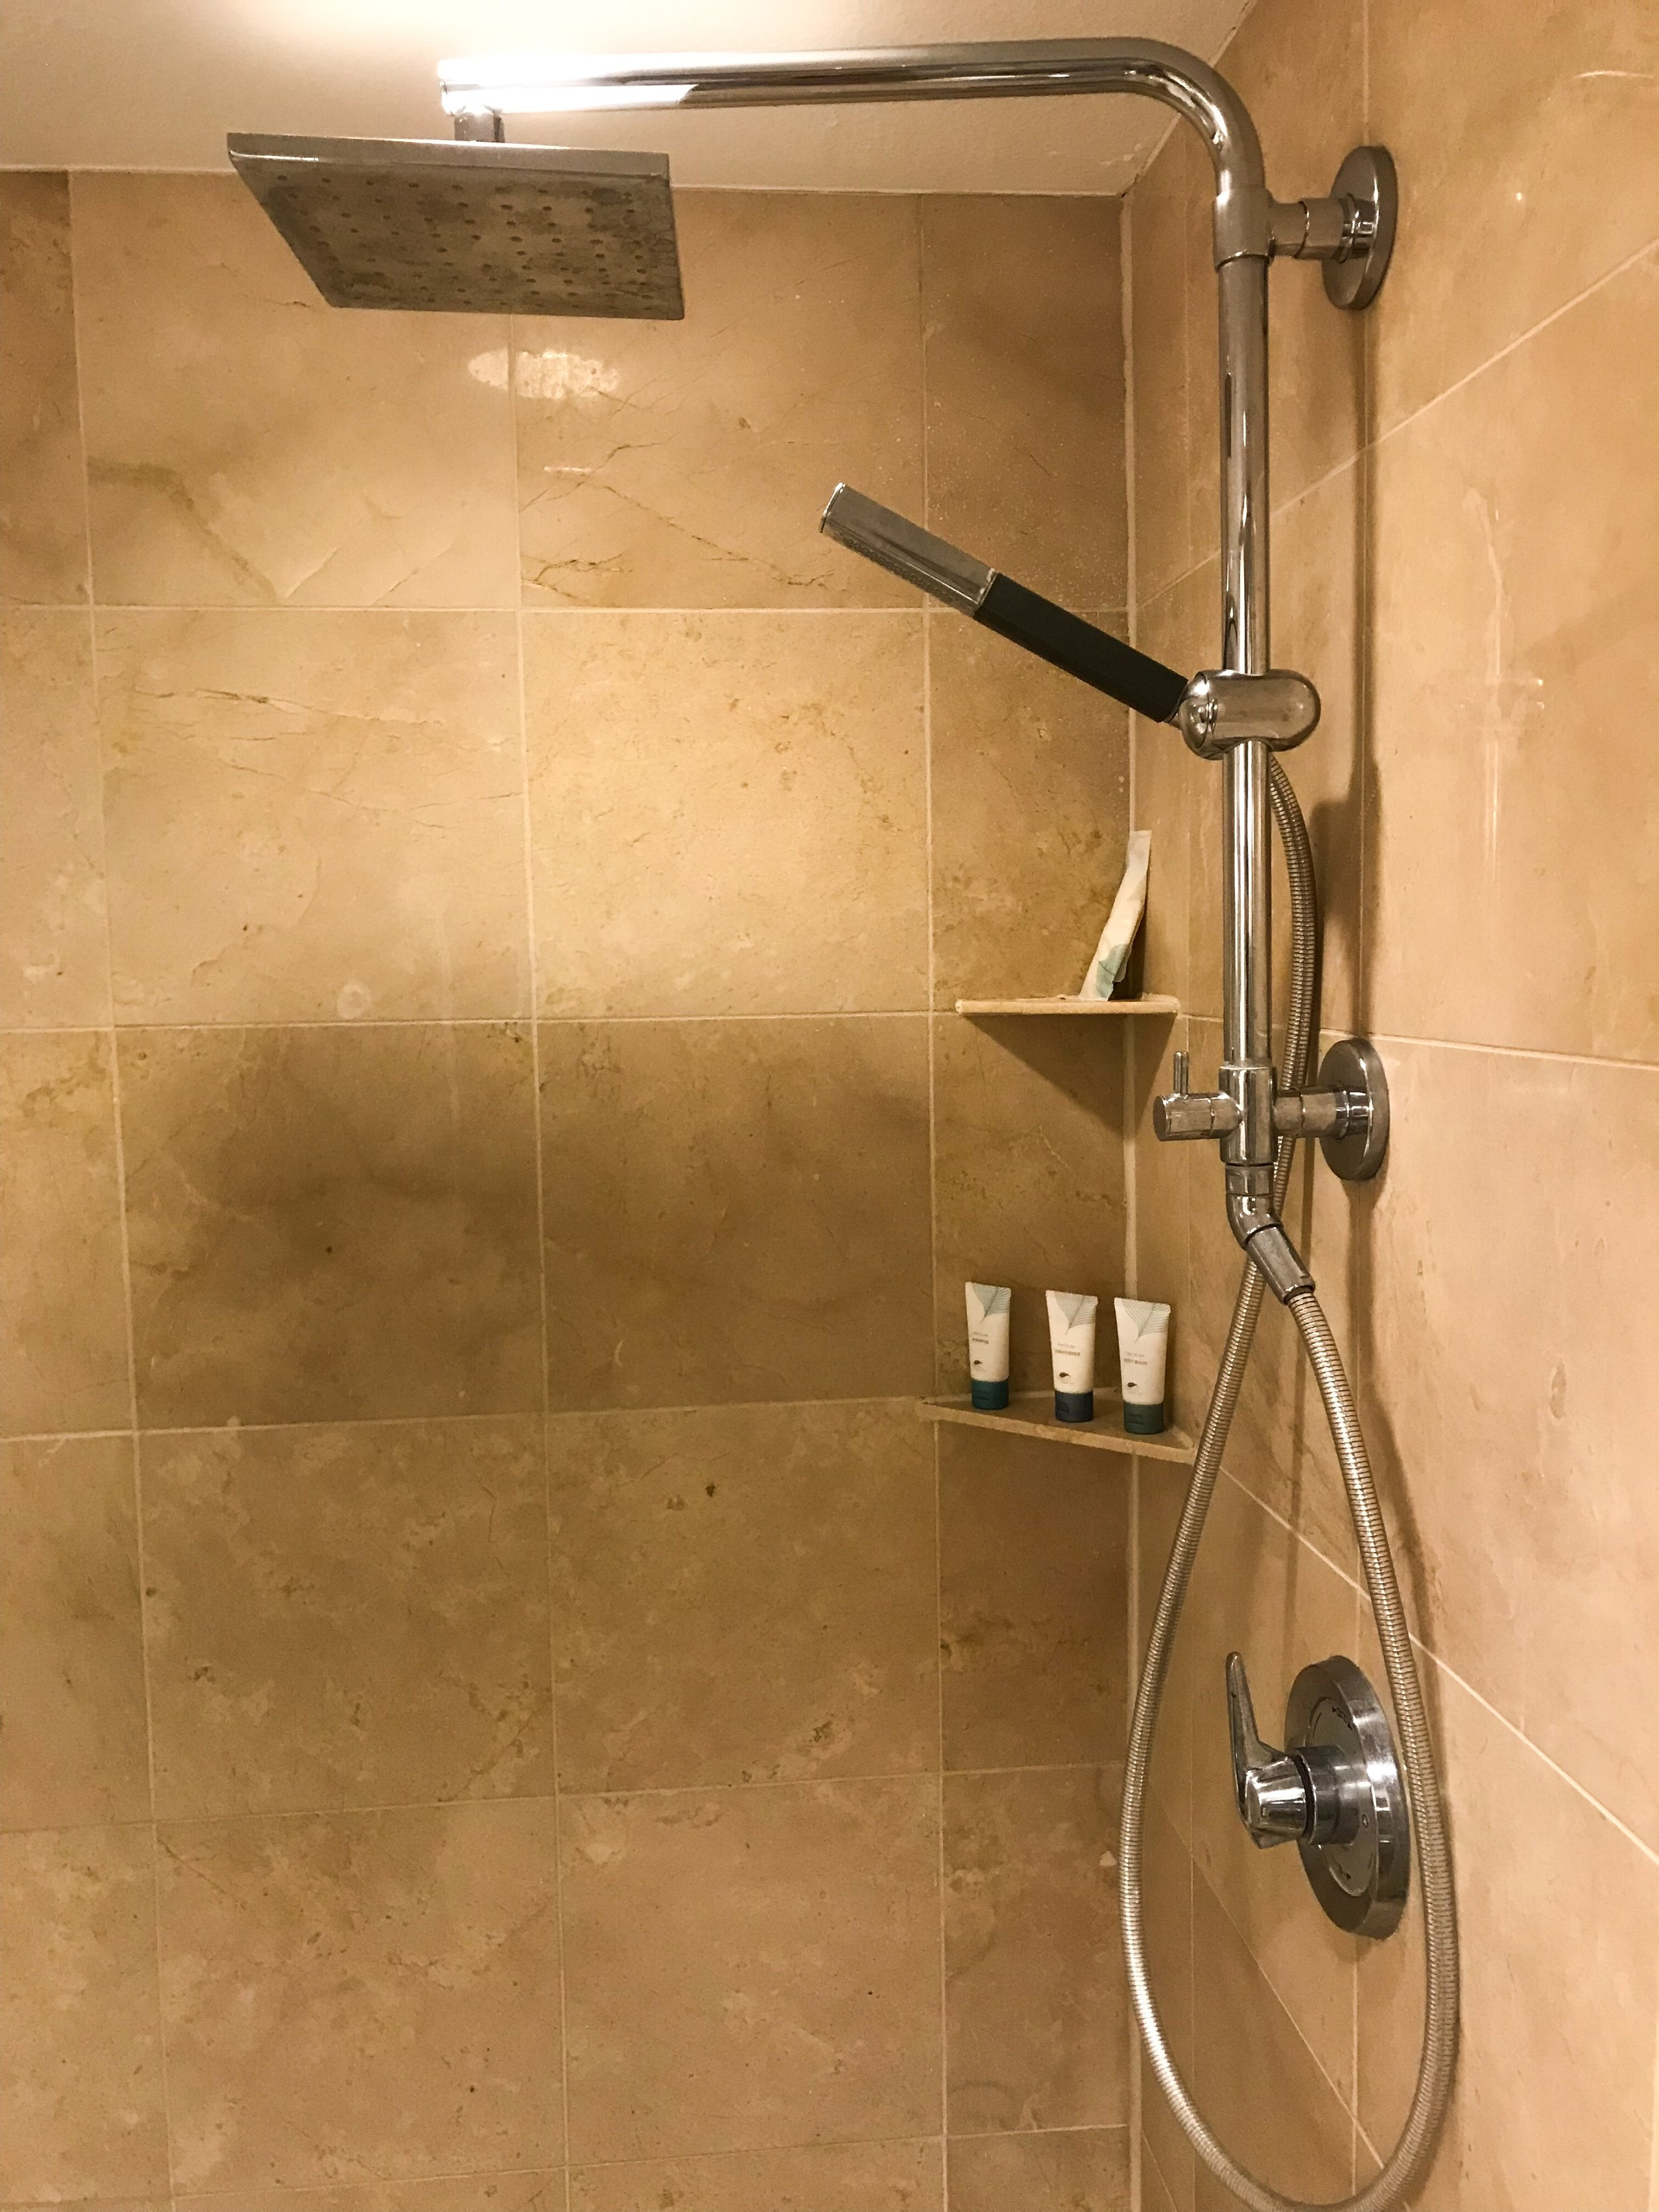 The shower head was set up like a rain shower and there was a handheld extension.